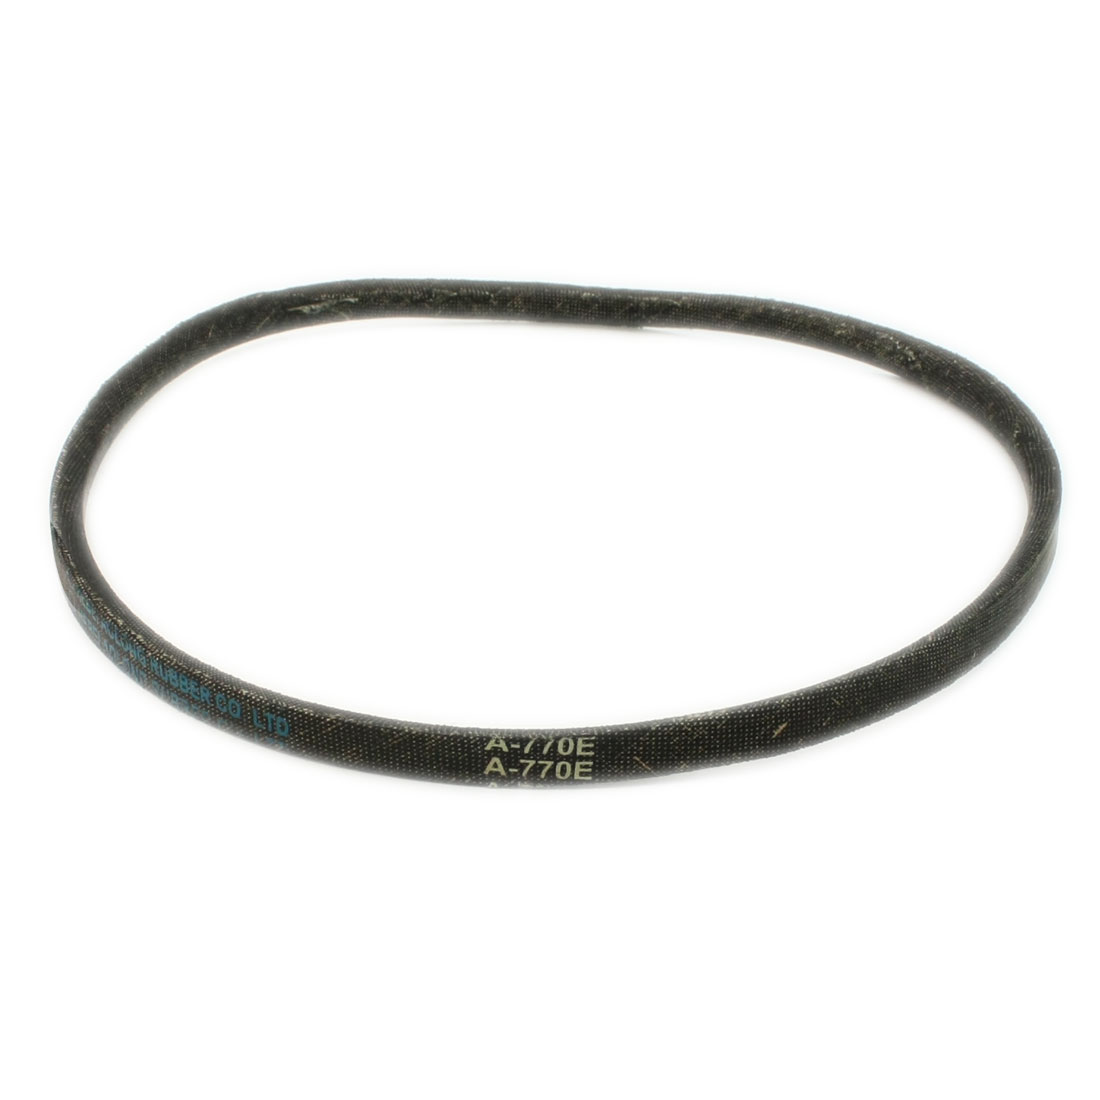 "Washing Machine Motor V Belt 10mm Outer Width 77cm 30 5/16"" Inner Girth"